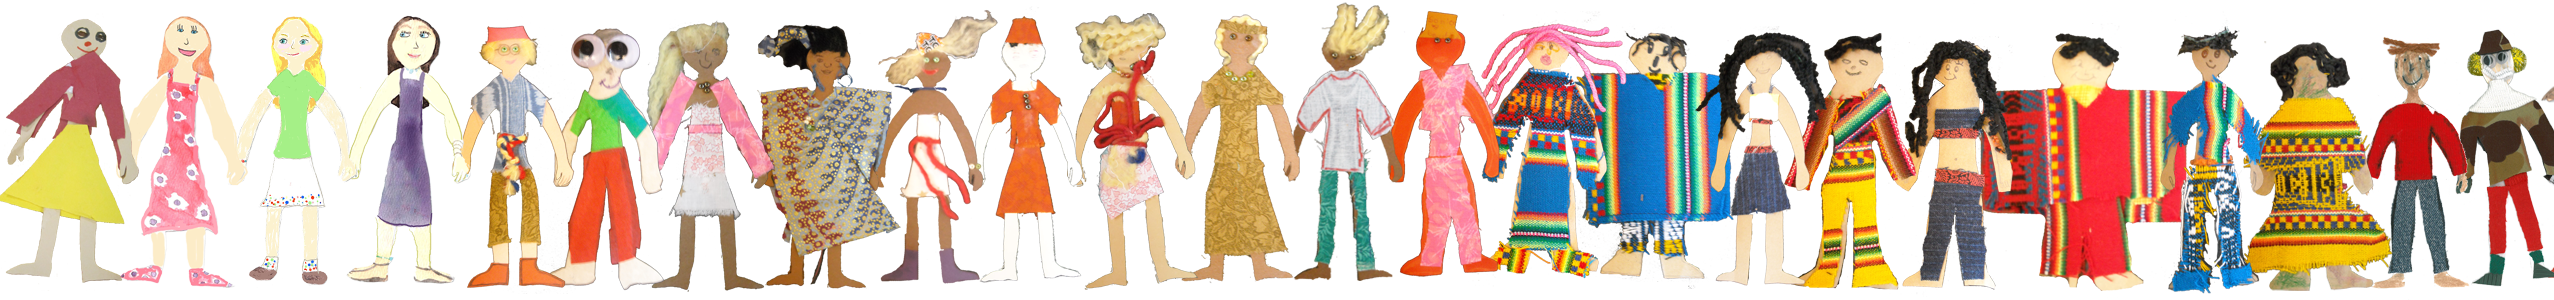 Kids holding hands png. To self transparent images